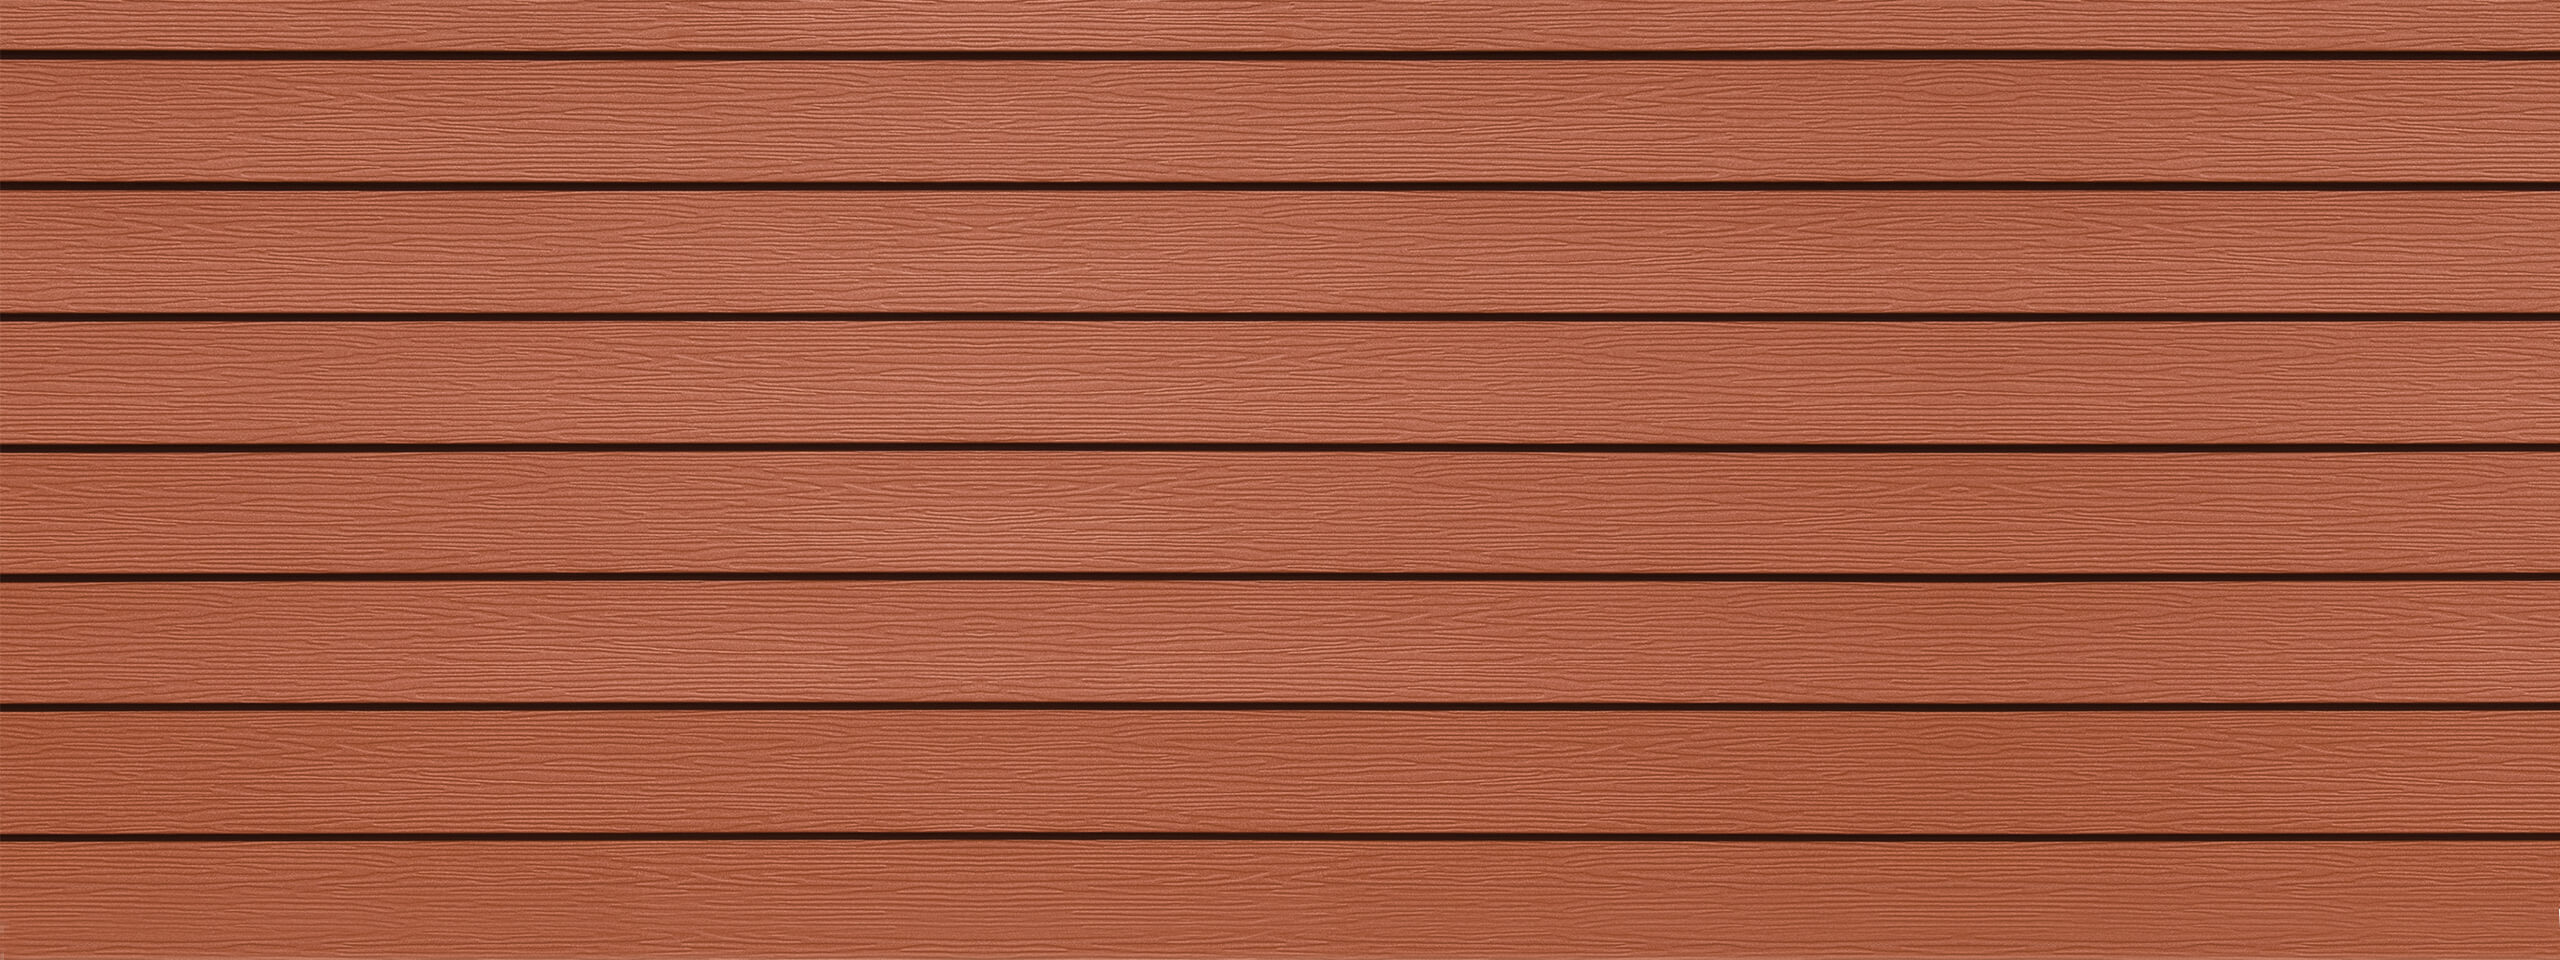 Prism Sedona red steel siding